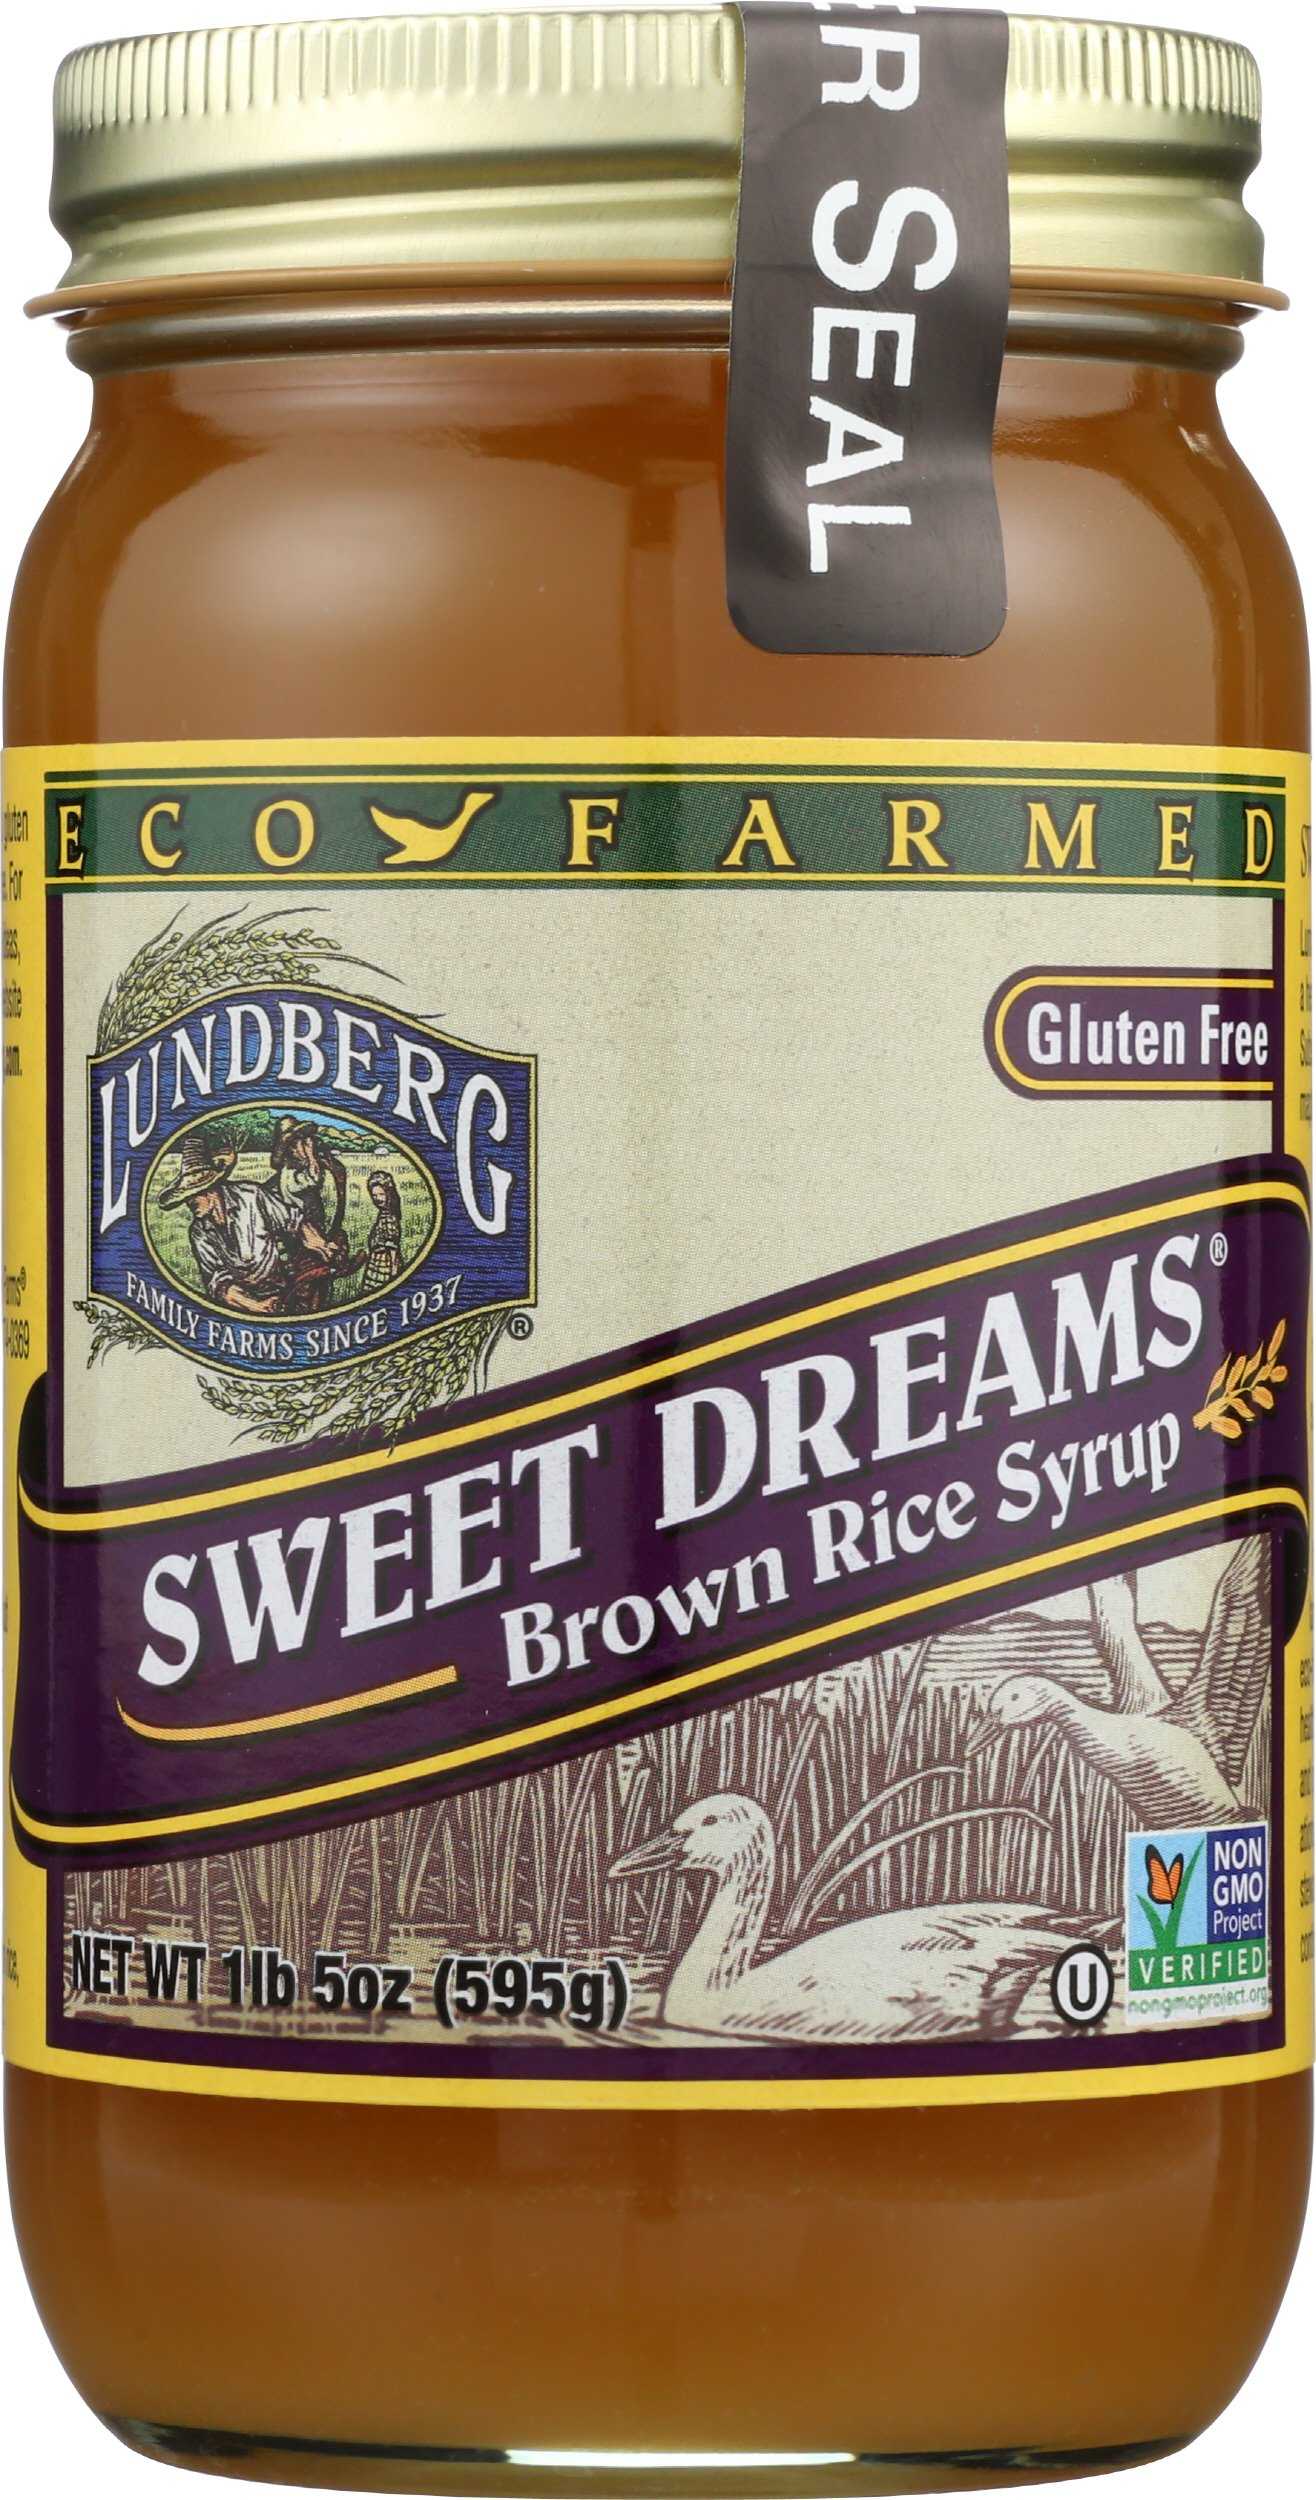 Lundberg Family Farms Sweet Dreams Brown Rice Syrup, 21 Ounce (Pack of 12)